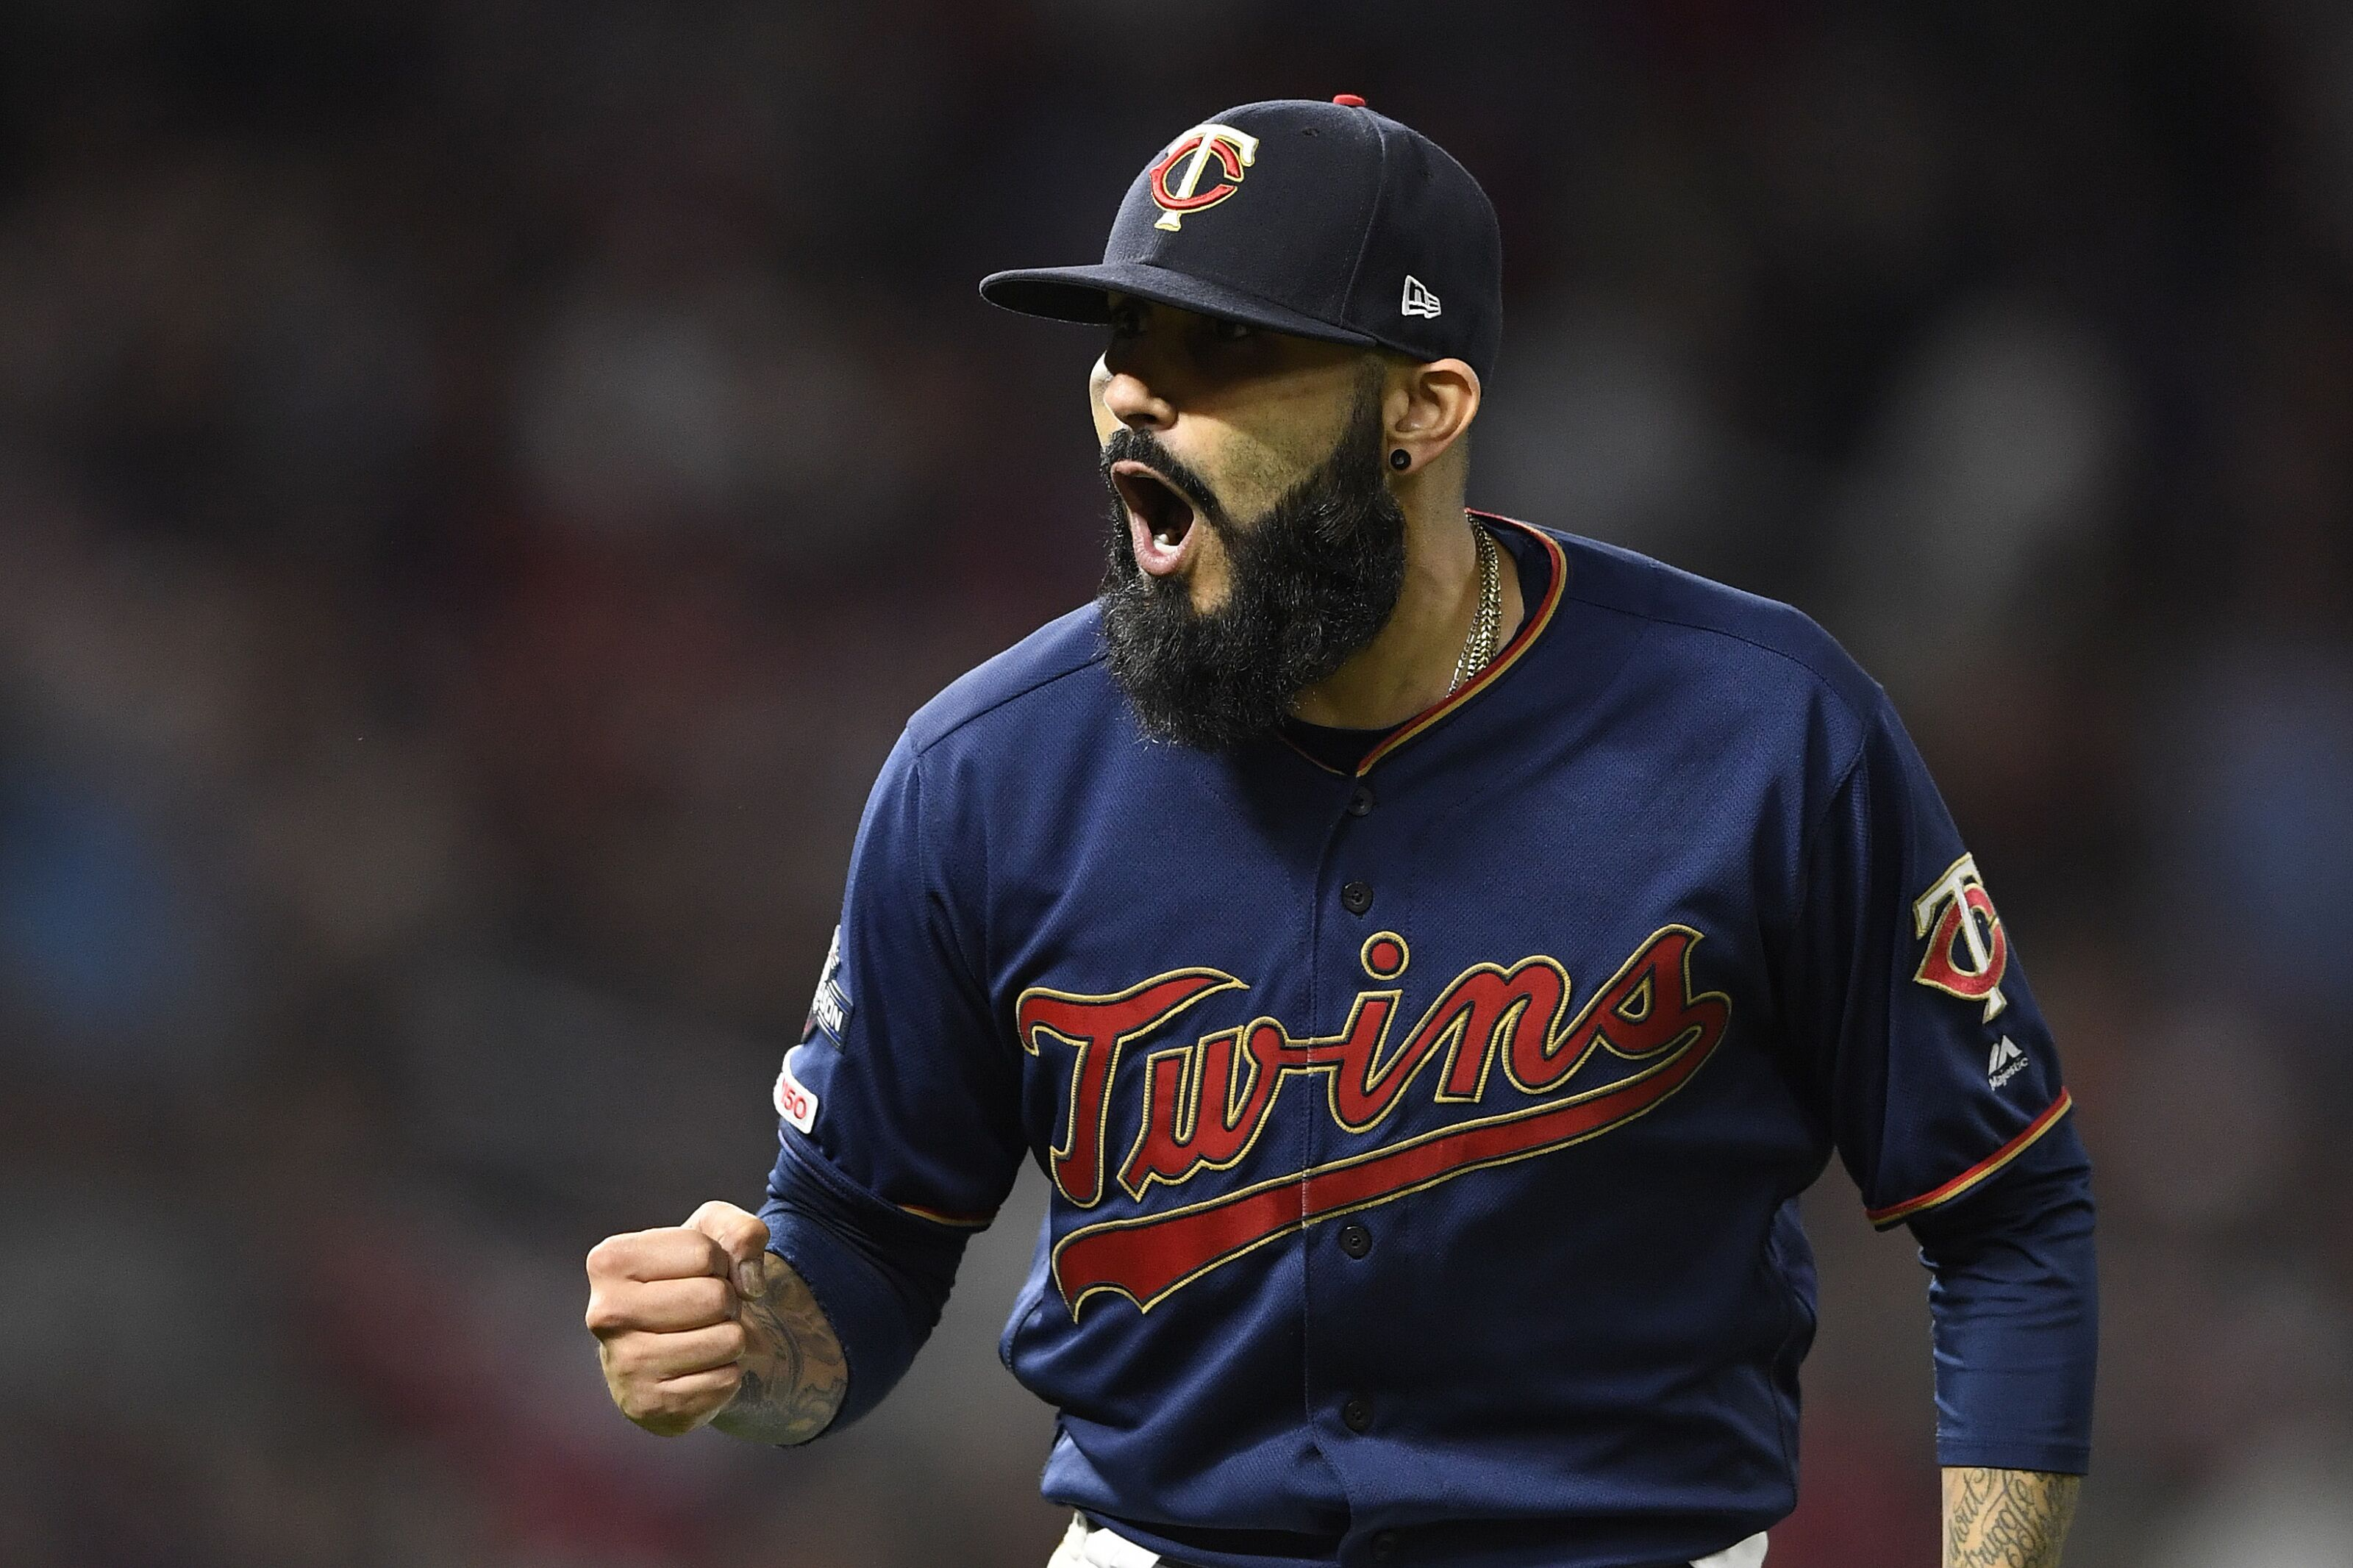 Twins reportedly interested in bringing back Sergio Romo